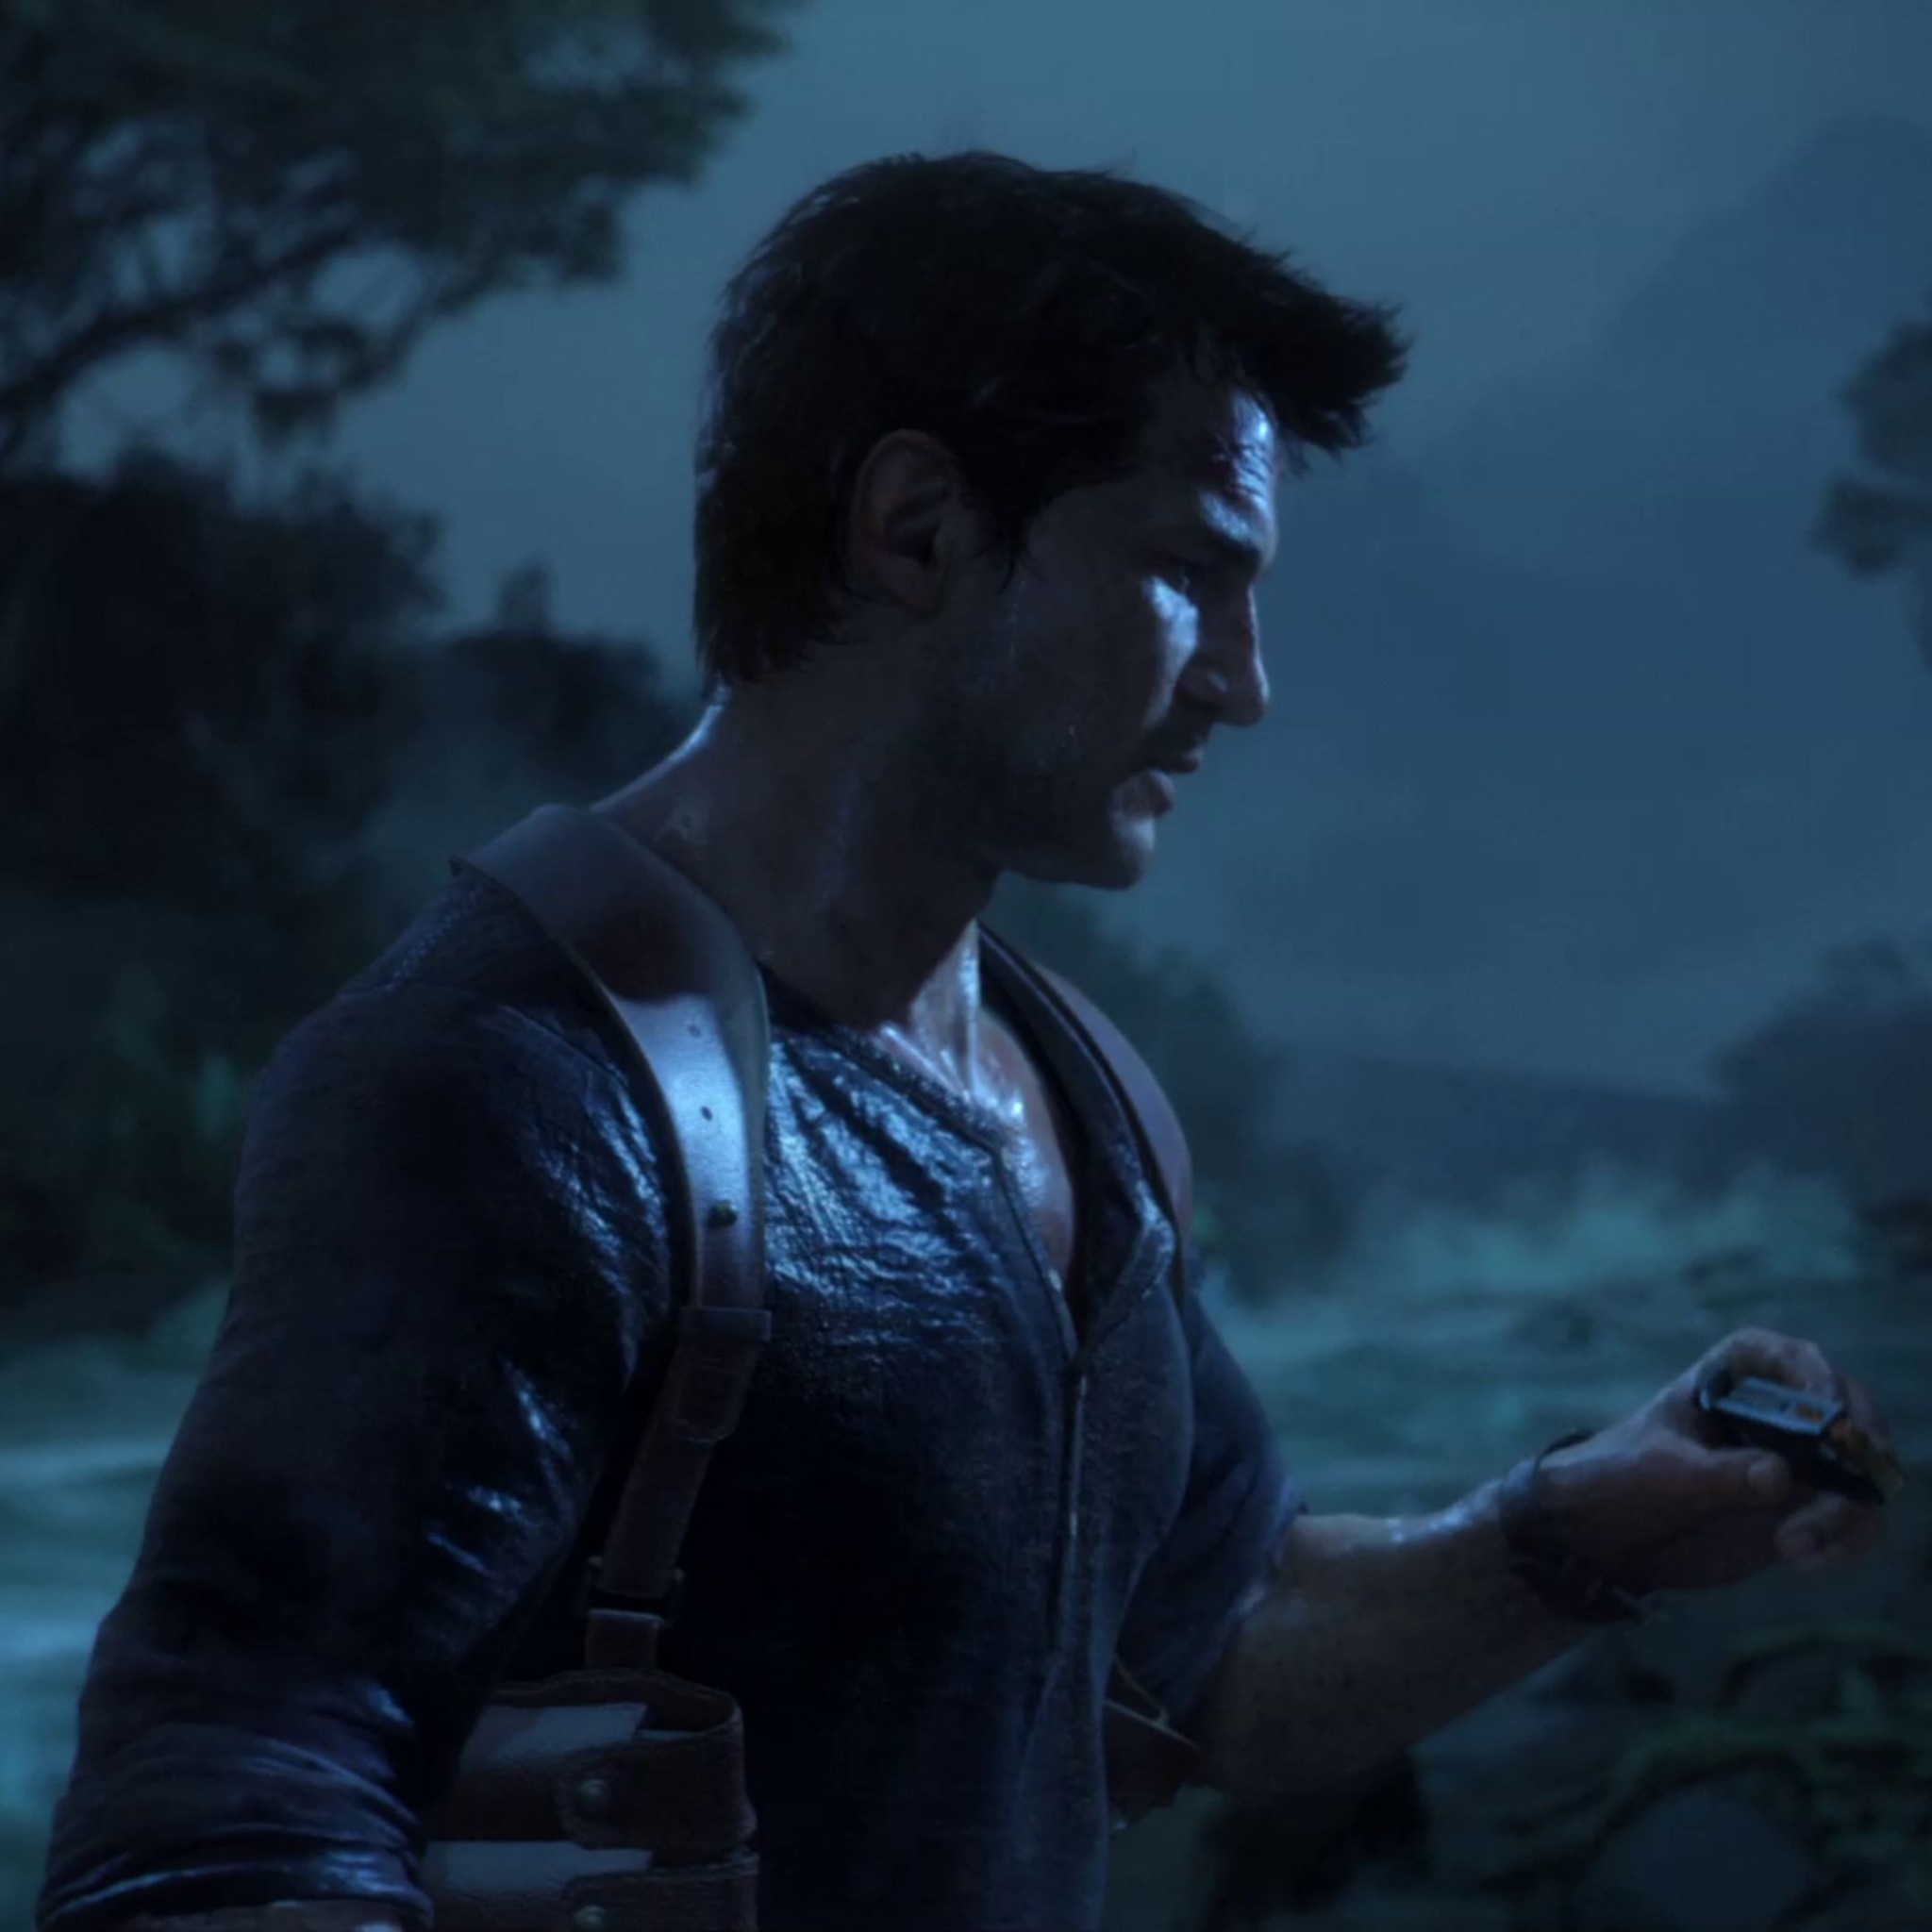 uncharted 4 wallpaper iphone